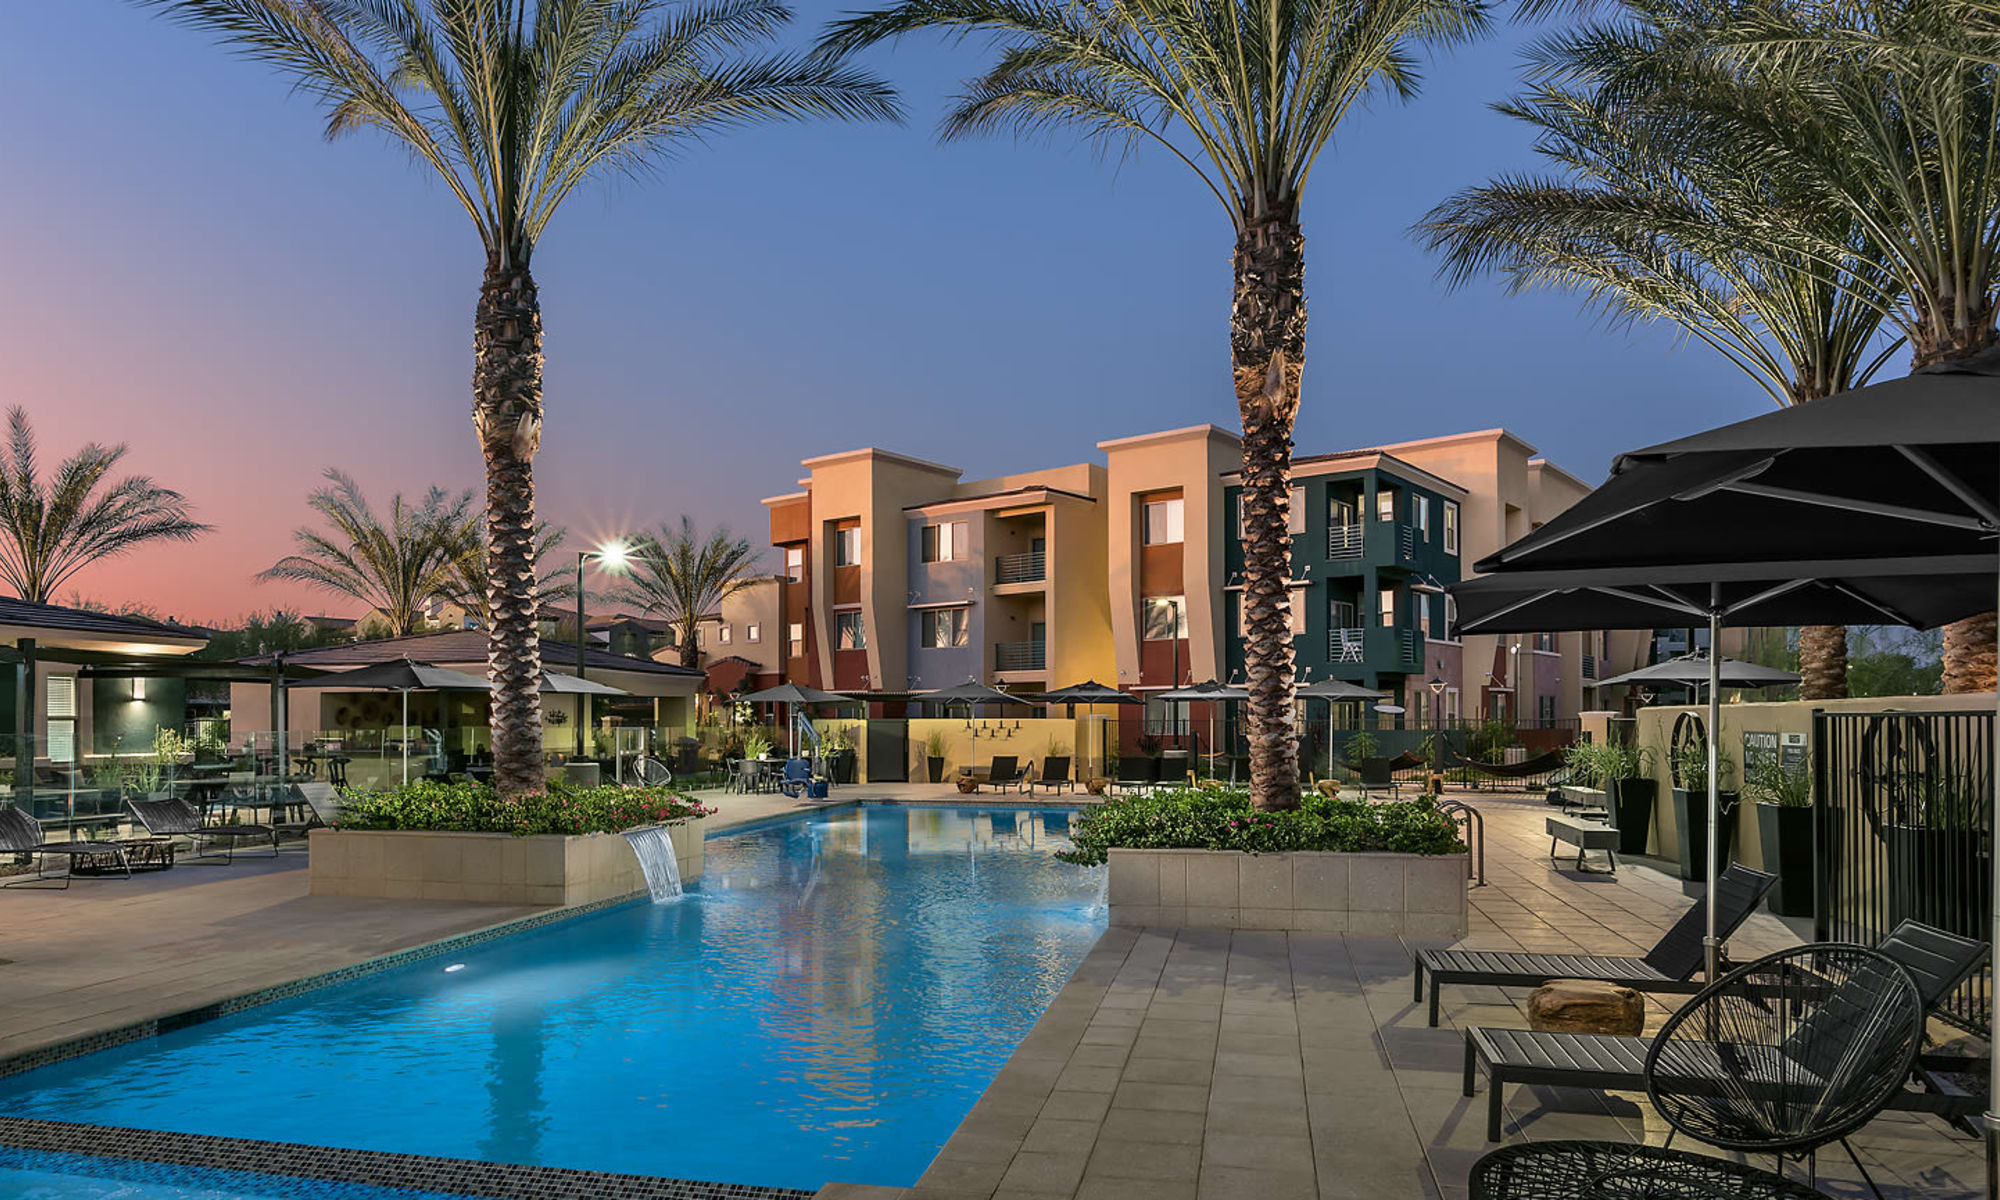 Apartments with a resort style community swimming pool at Villa Vita Apartments in Peoria, Arizona